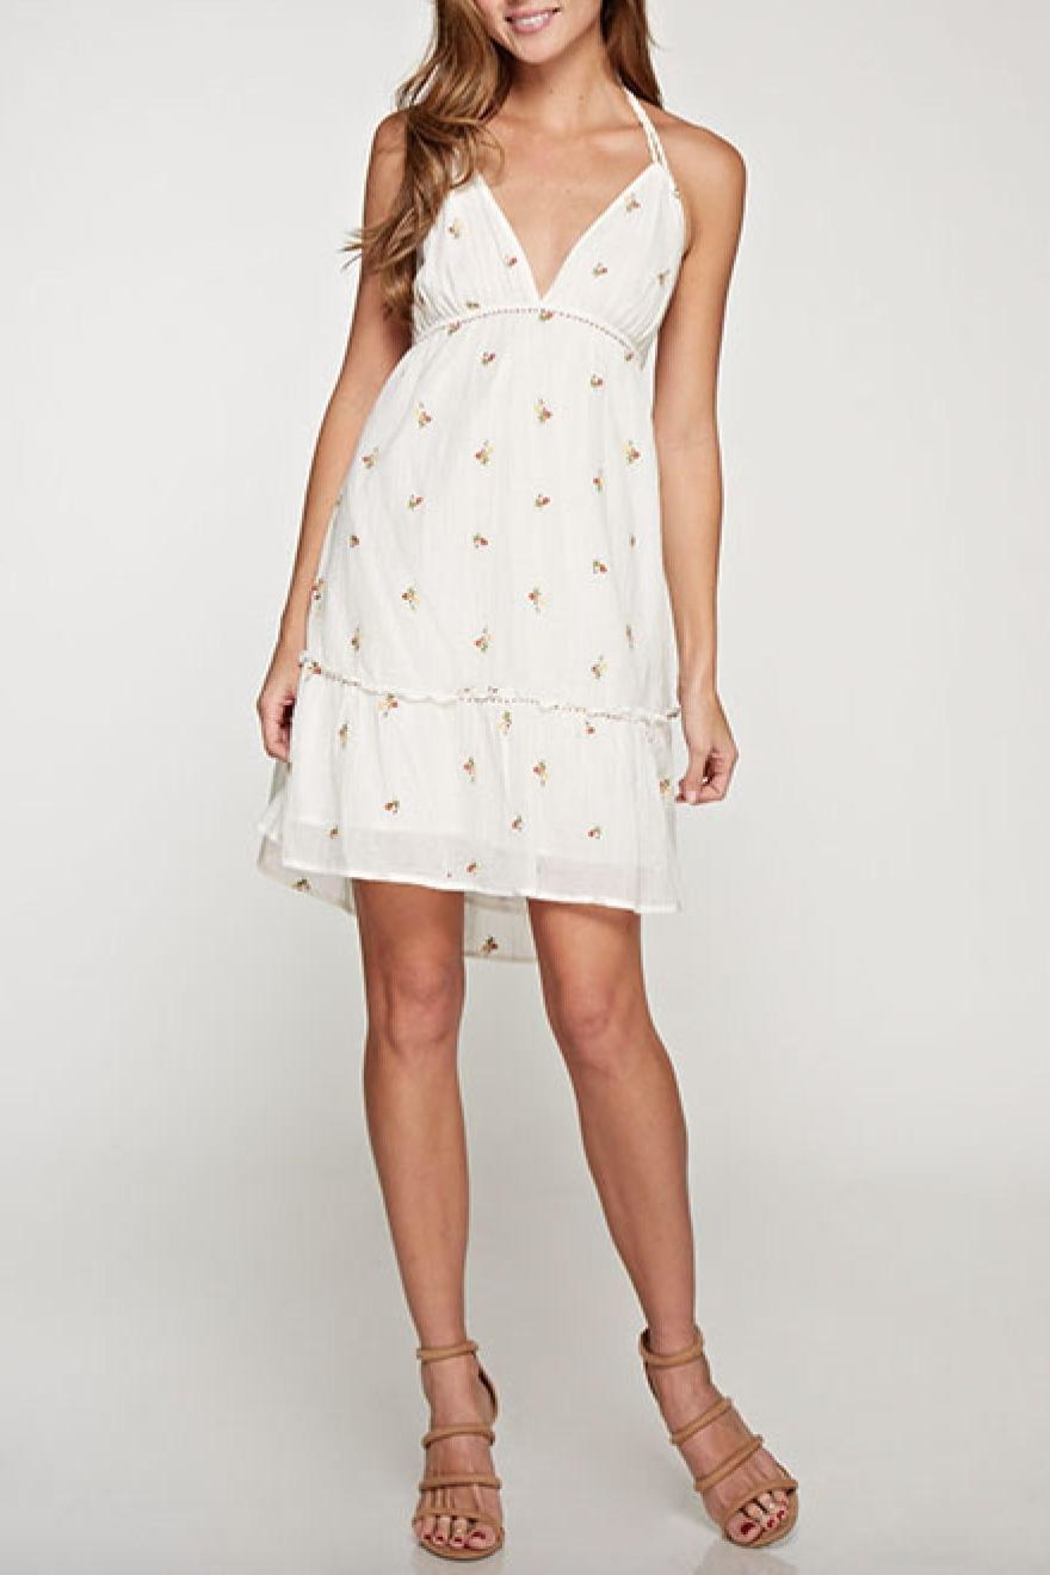 Lovestitch Halter Embroidered Dress - Main Image